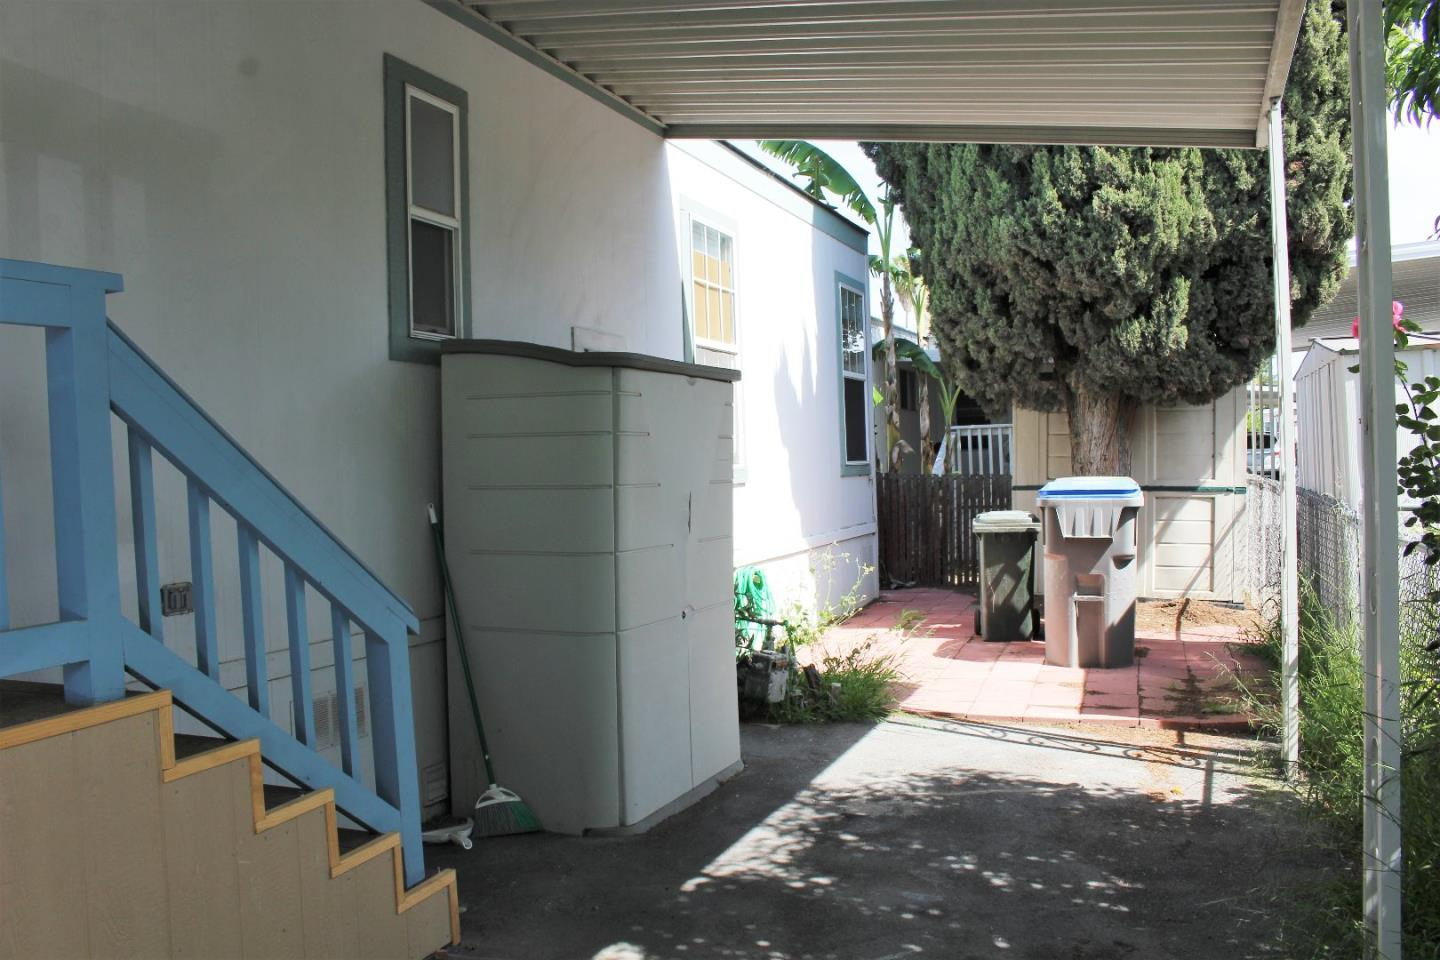 Additional photo for property listing at 411 Lewis Road 411 Lewis Road San Jose, California 95111 United States